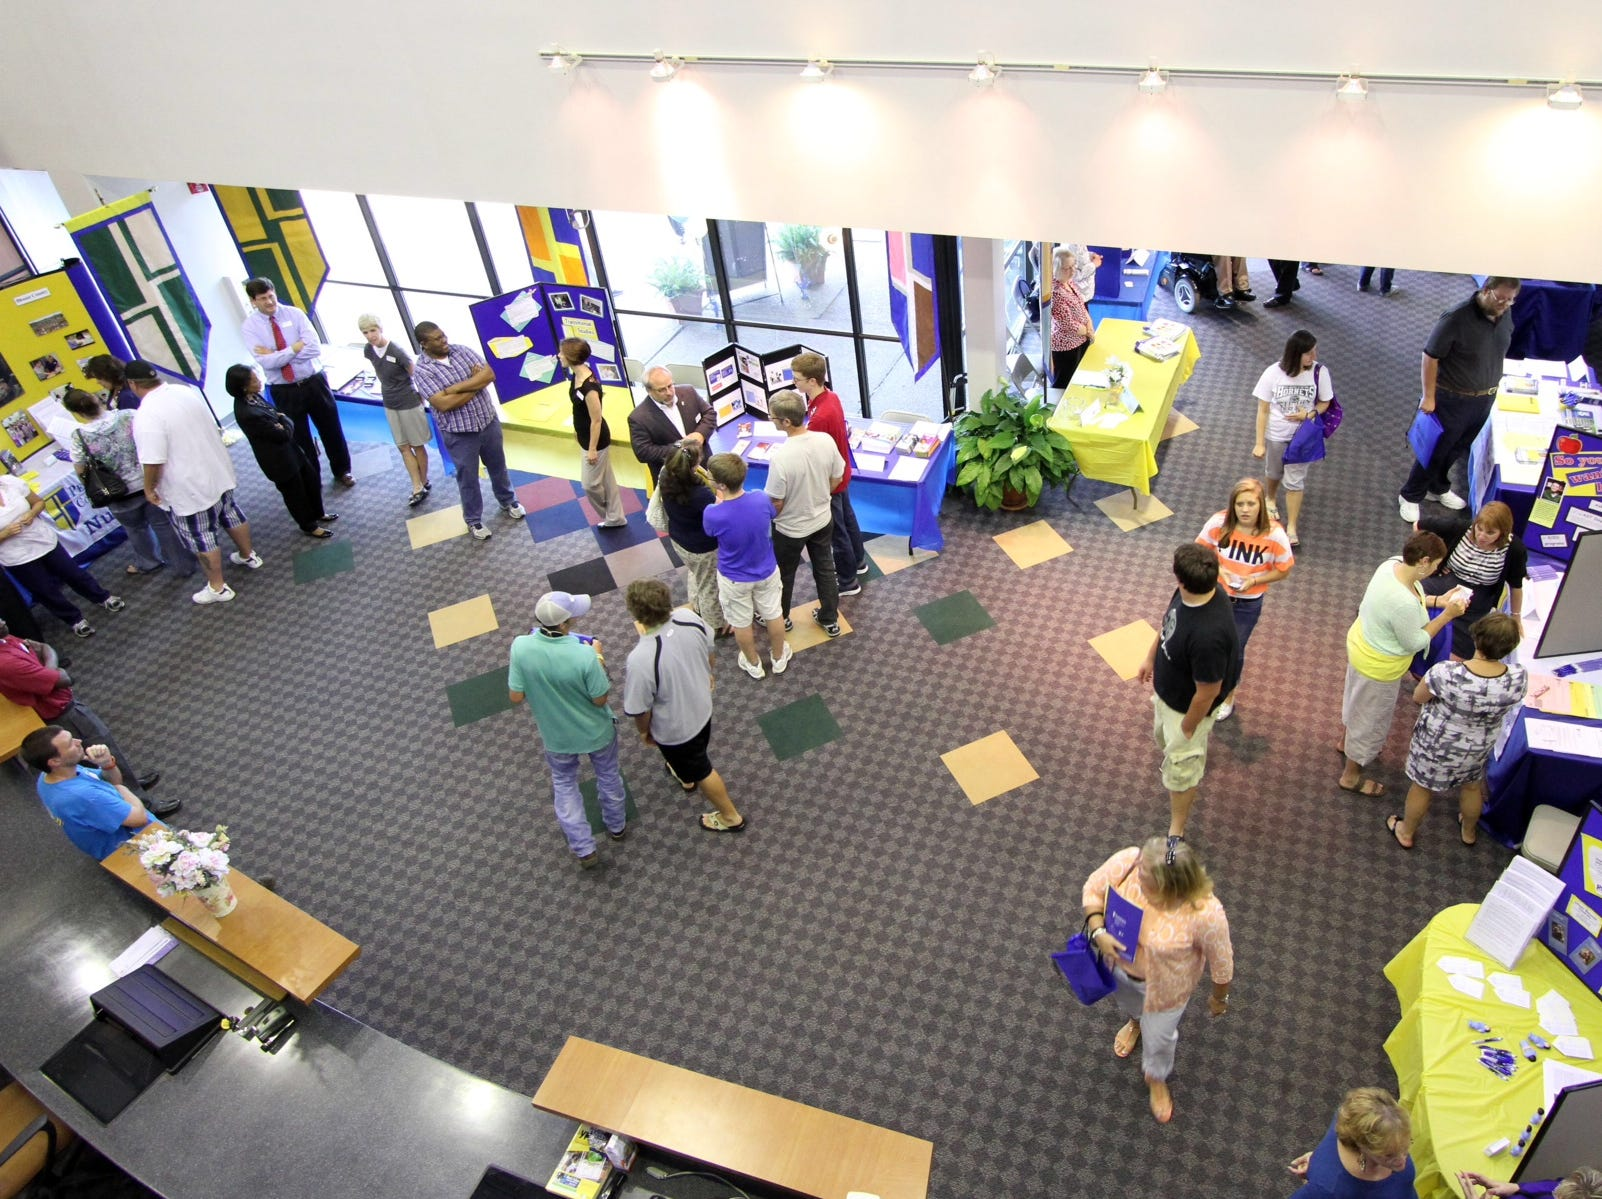 Visitors crowd the lobby during an open house Tuesday, May 15, 2012 at Pellissippi State Community College's new Strawberry Plains campus. Prospective students got a first look at the facility and learned about the school's dual enrollment, financial aid and academic programs.